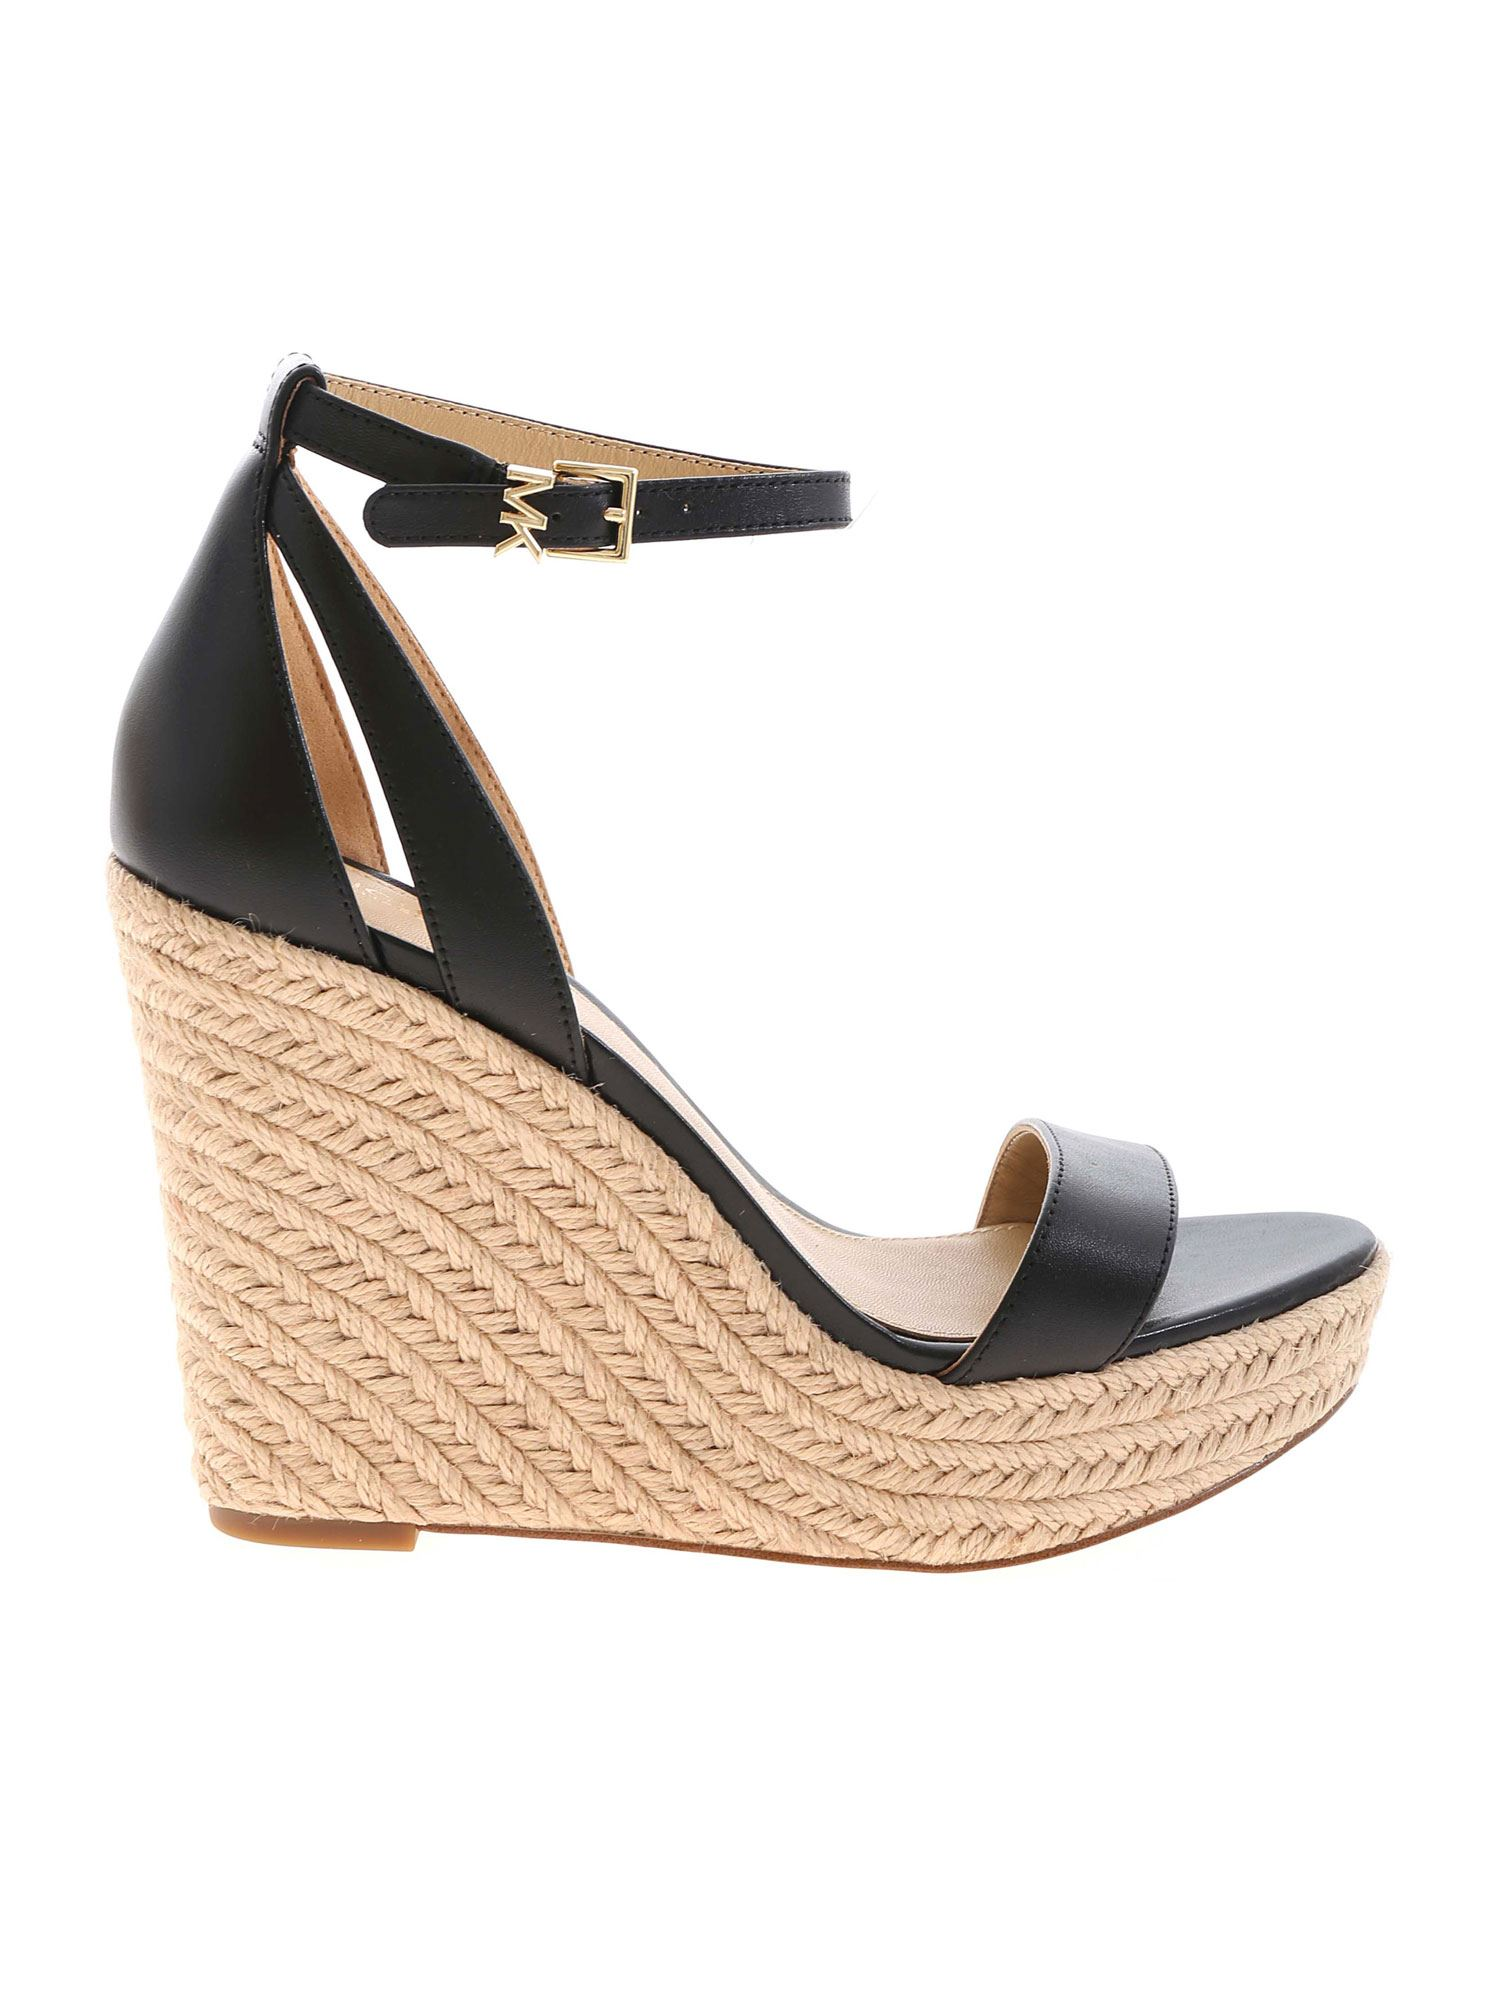 Michael Kors KIMBERLY WEDGE IN BLACK